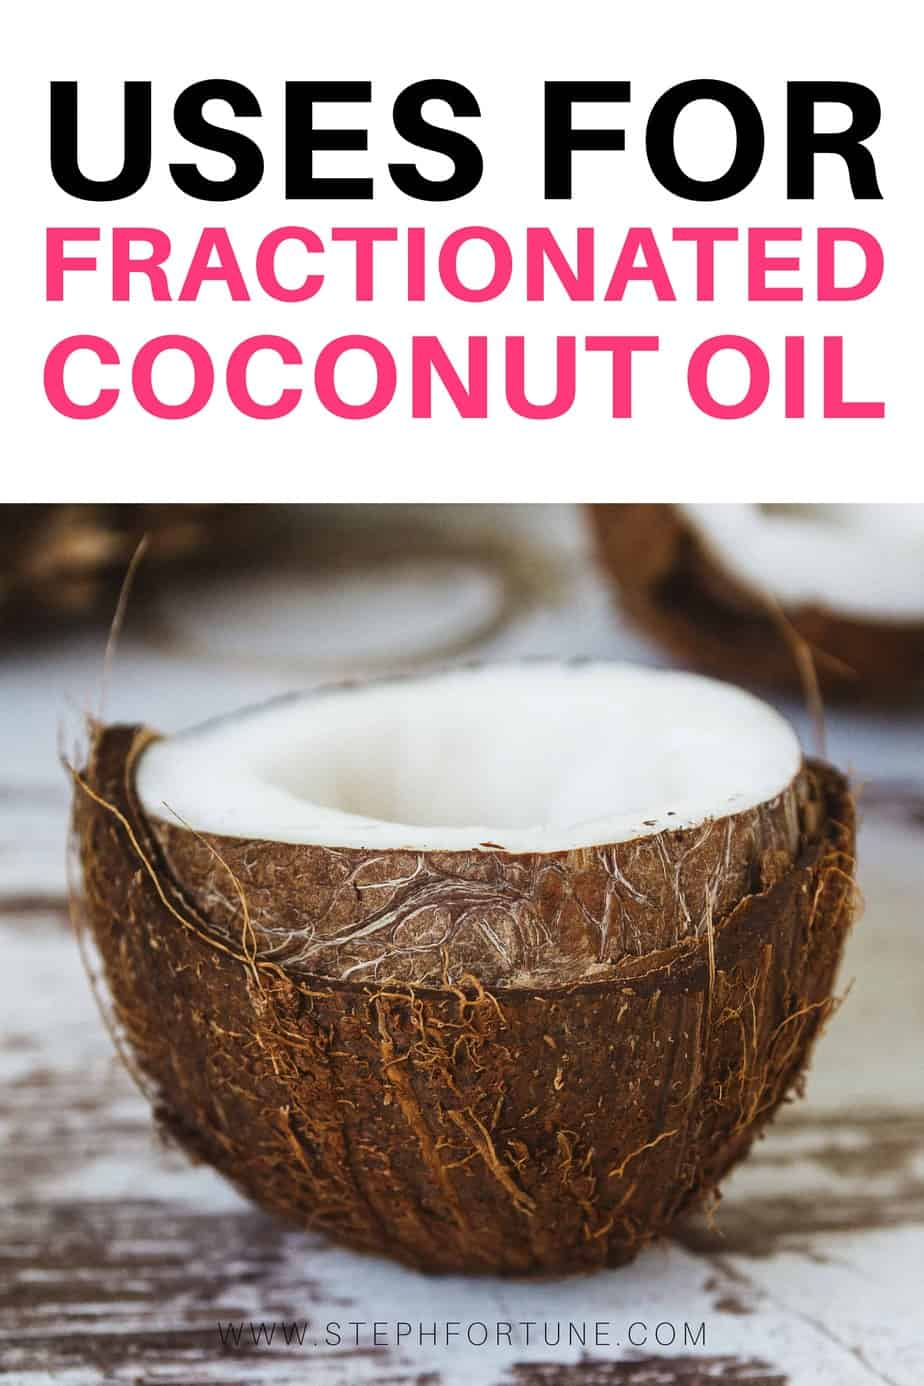 Uses for Fractionated Cocont Oil